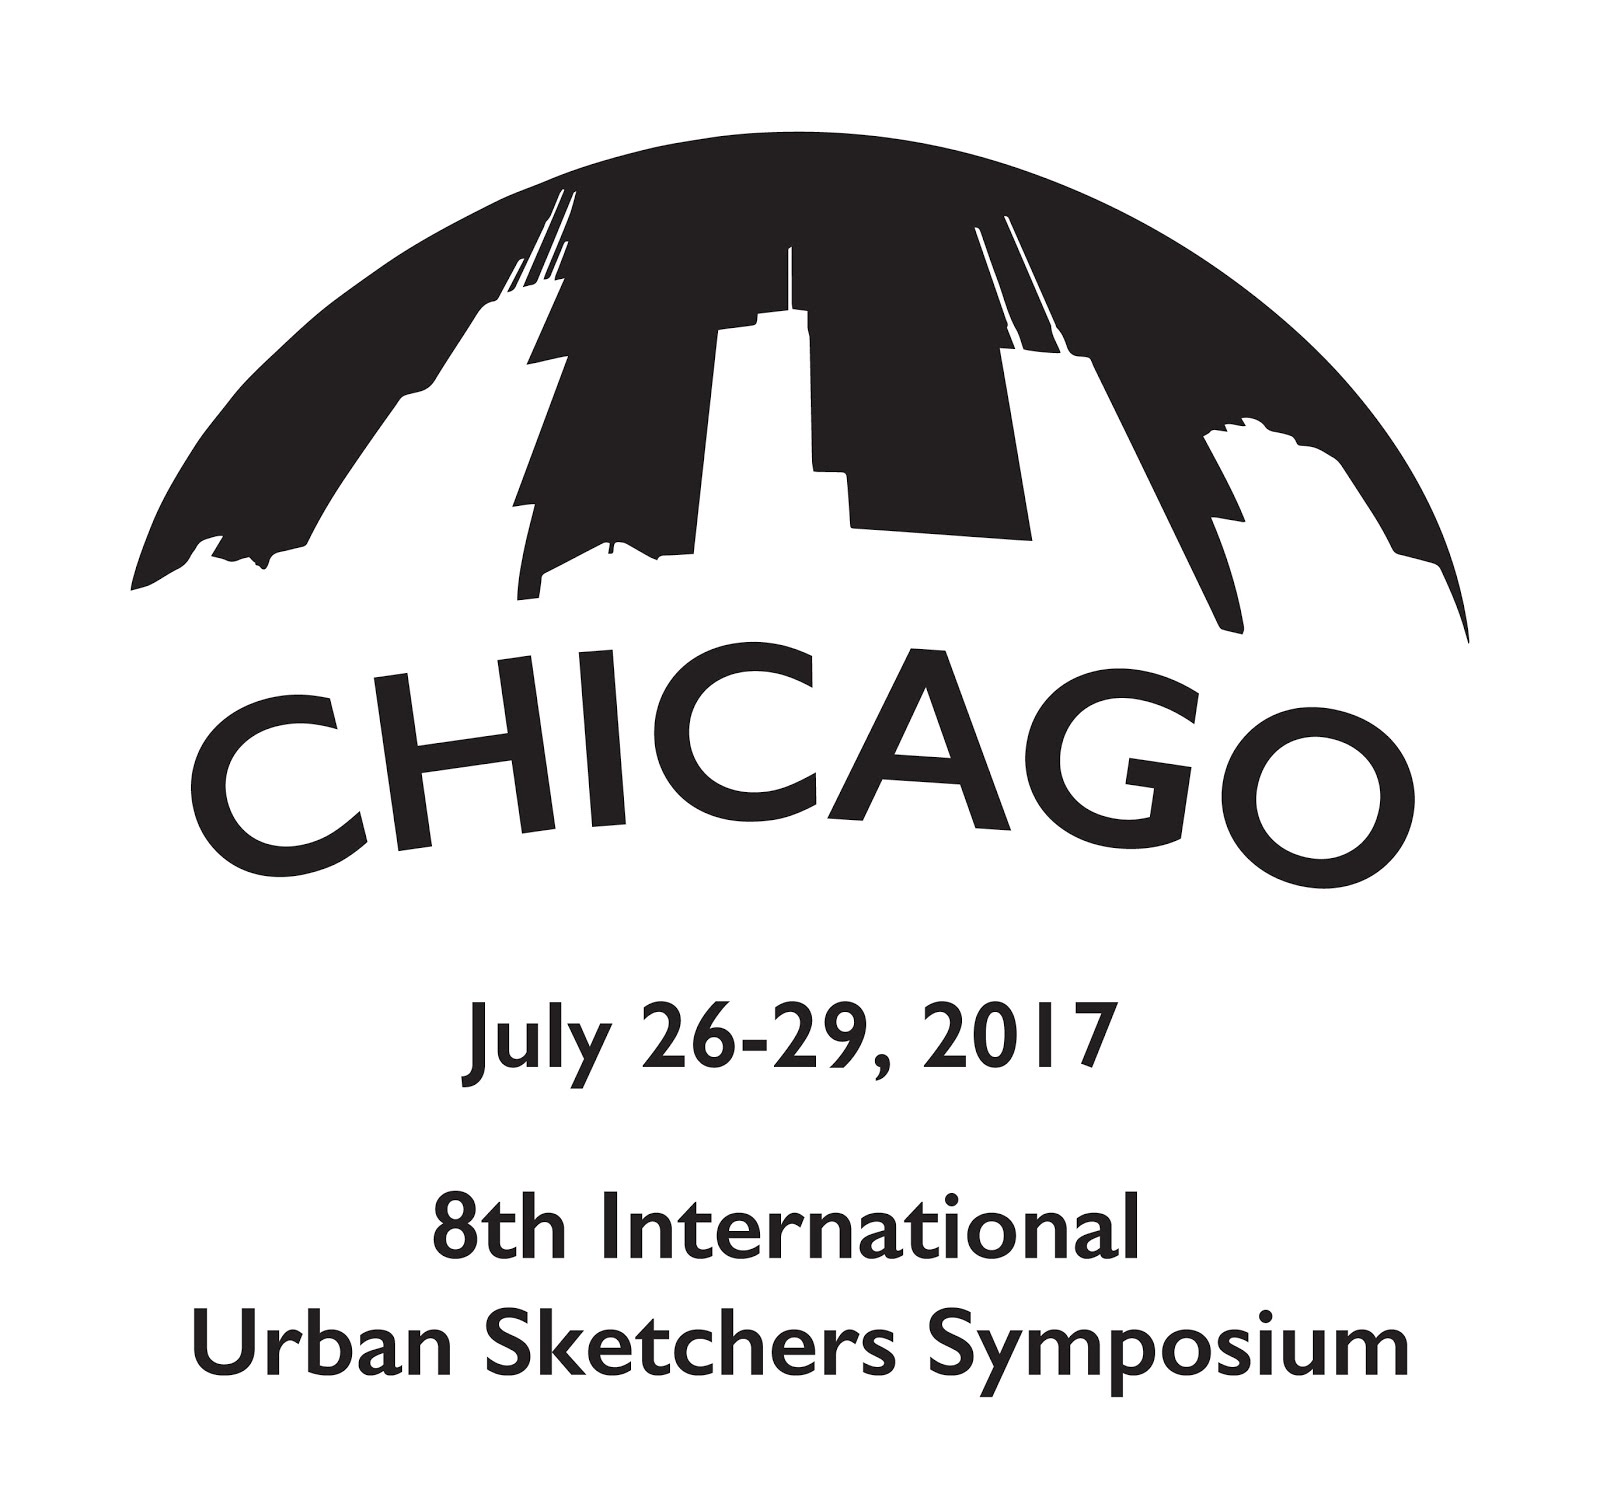 Urban Sketchers Symposium